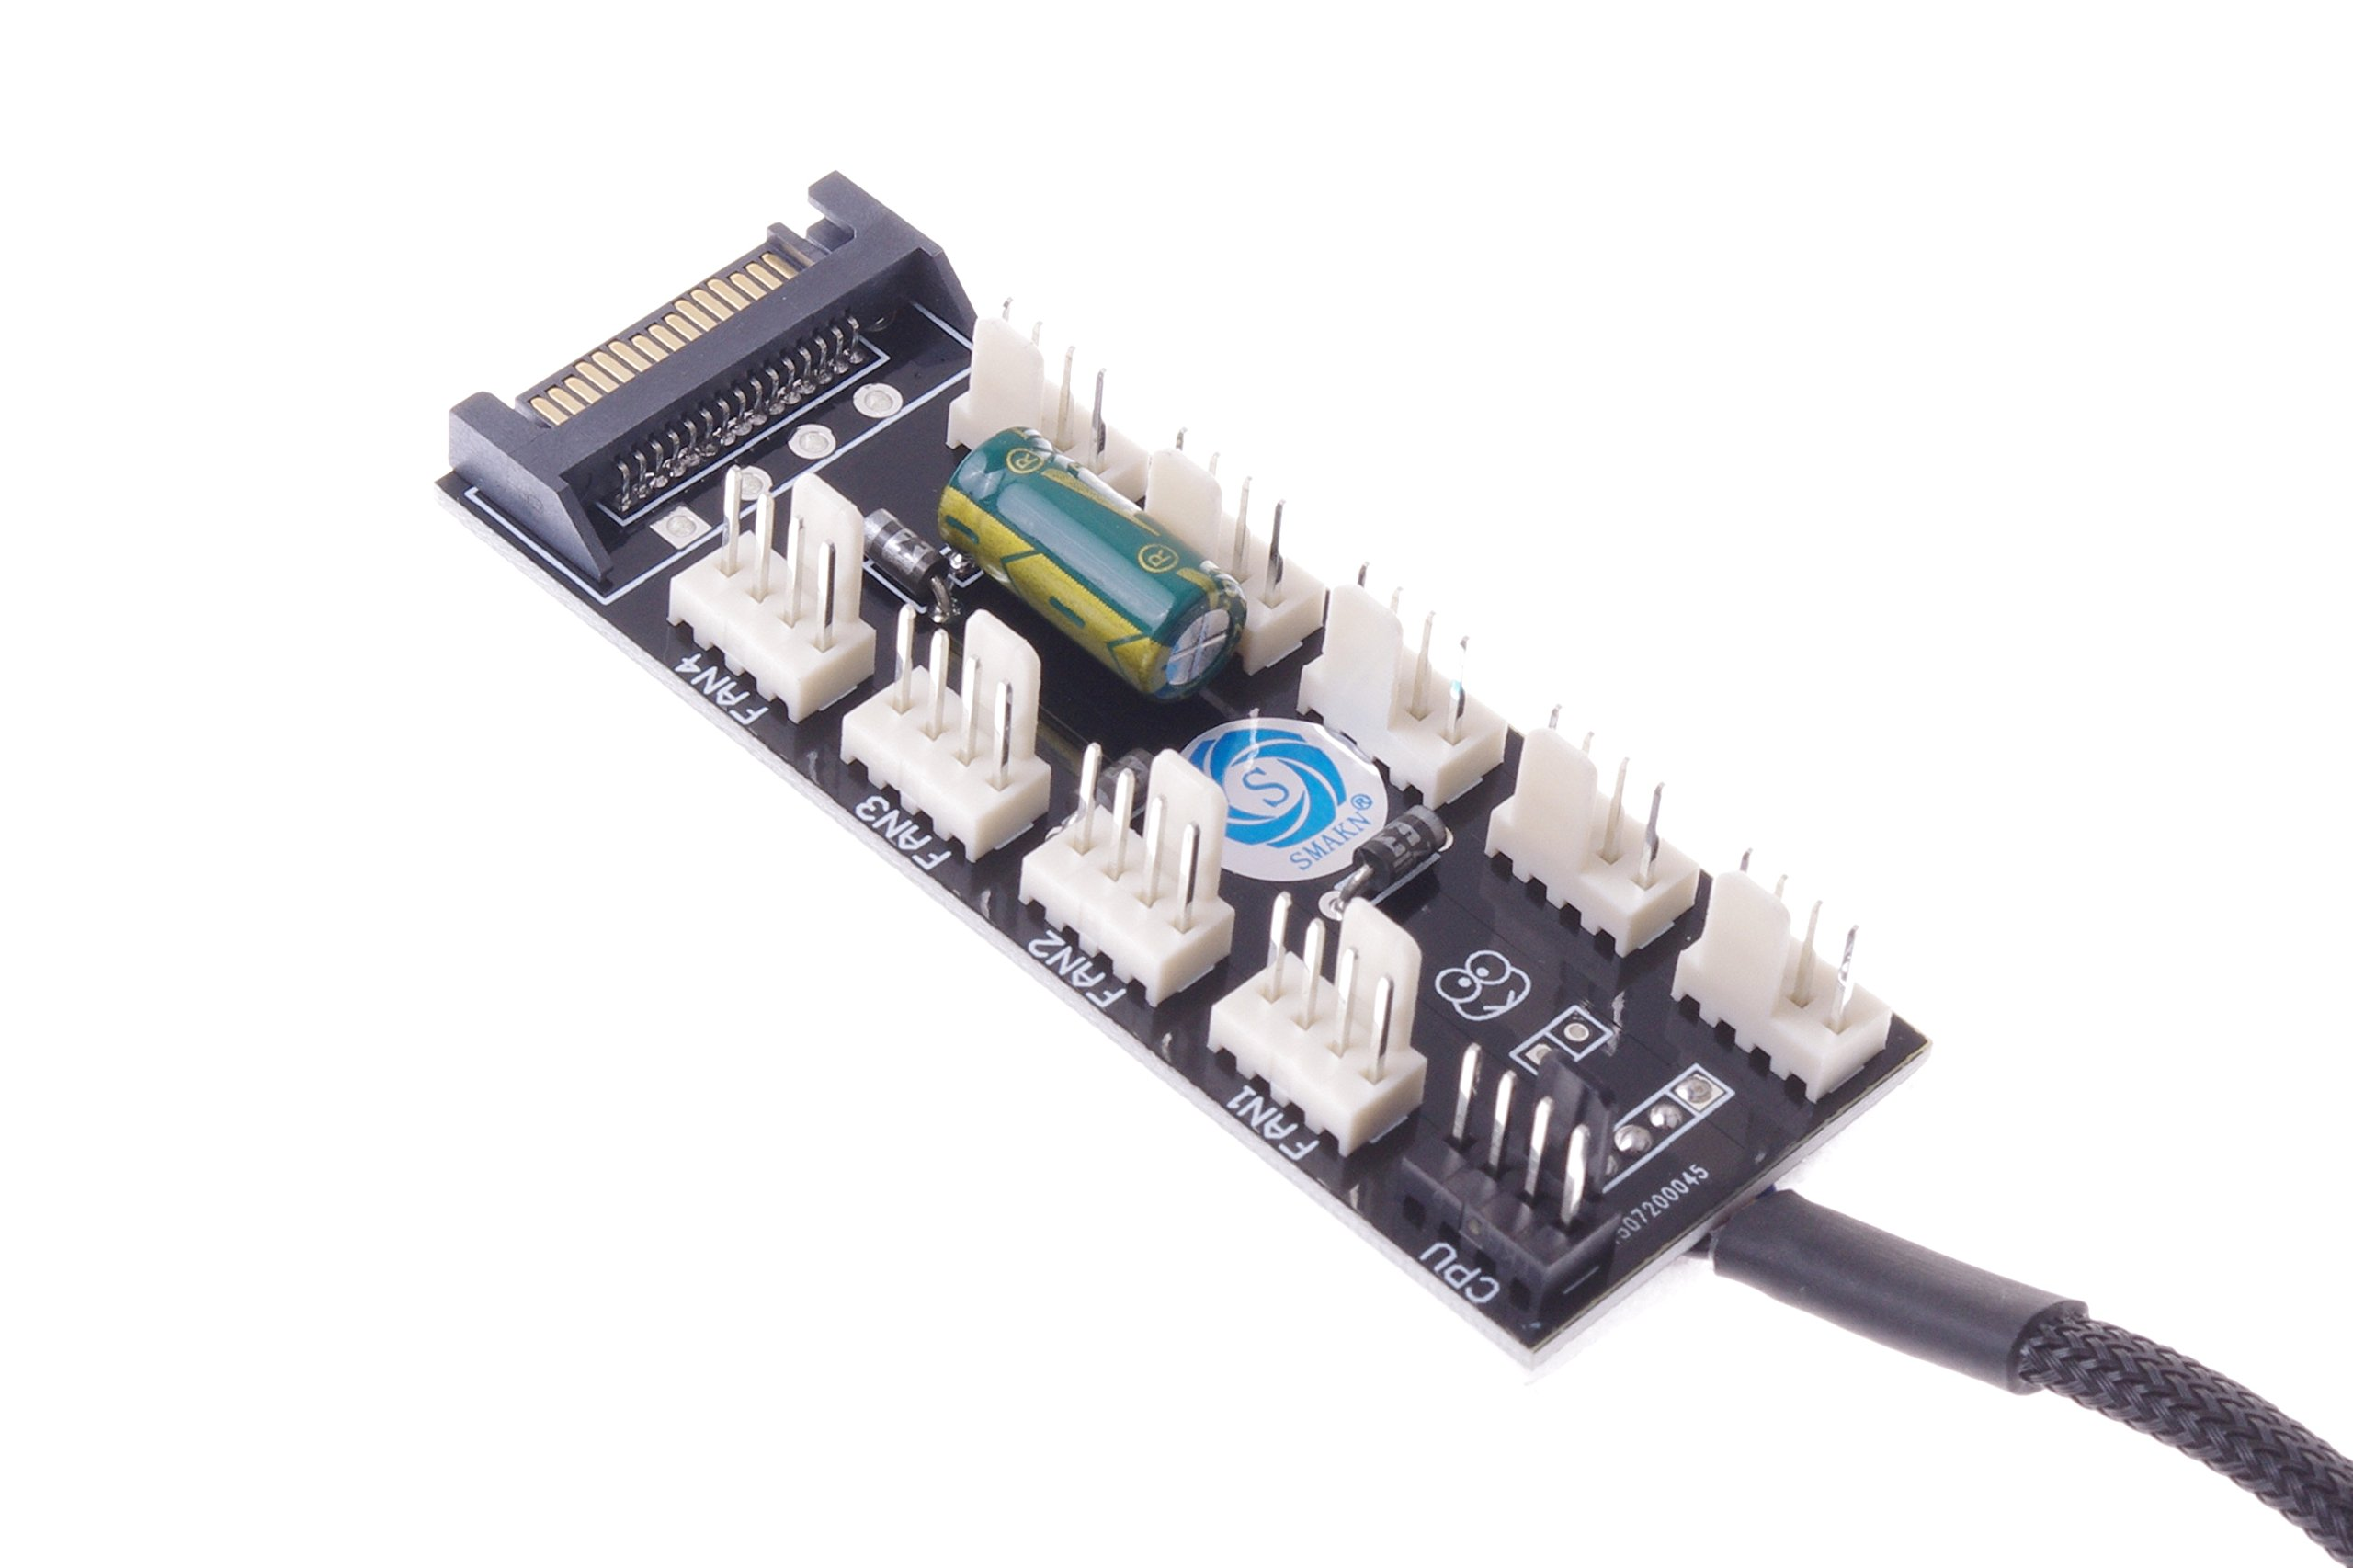 SMAKNÂ PC FAN HUB temperature-controlled supports 10 Ports 12V 3pin/4pin Fan Cable SATA-port Power by SMAKN (Image #6)